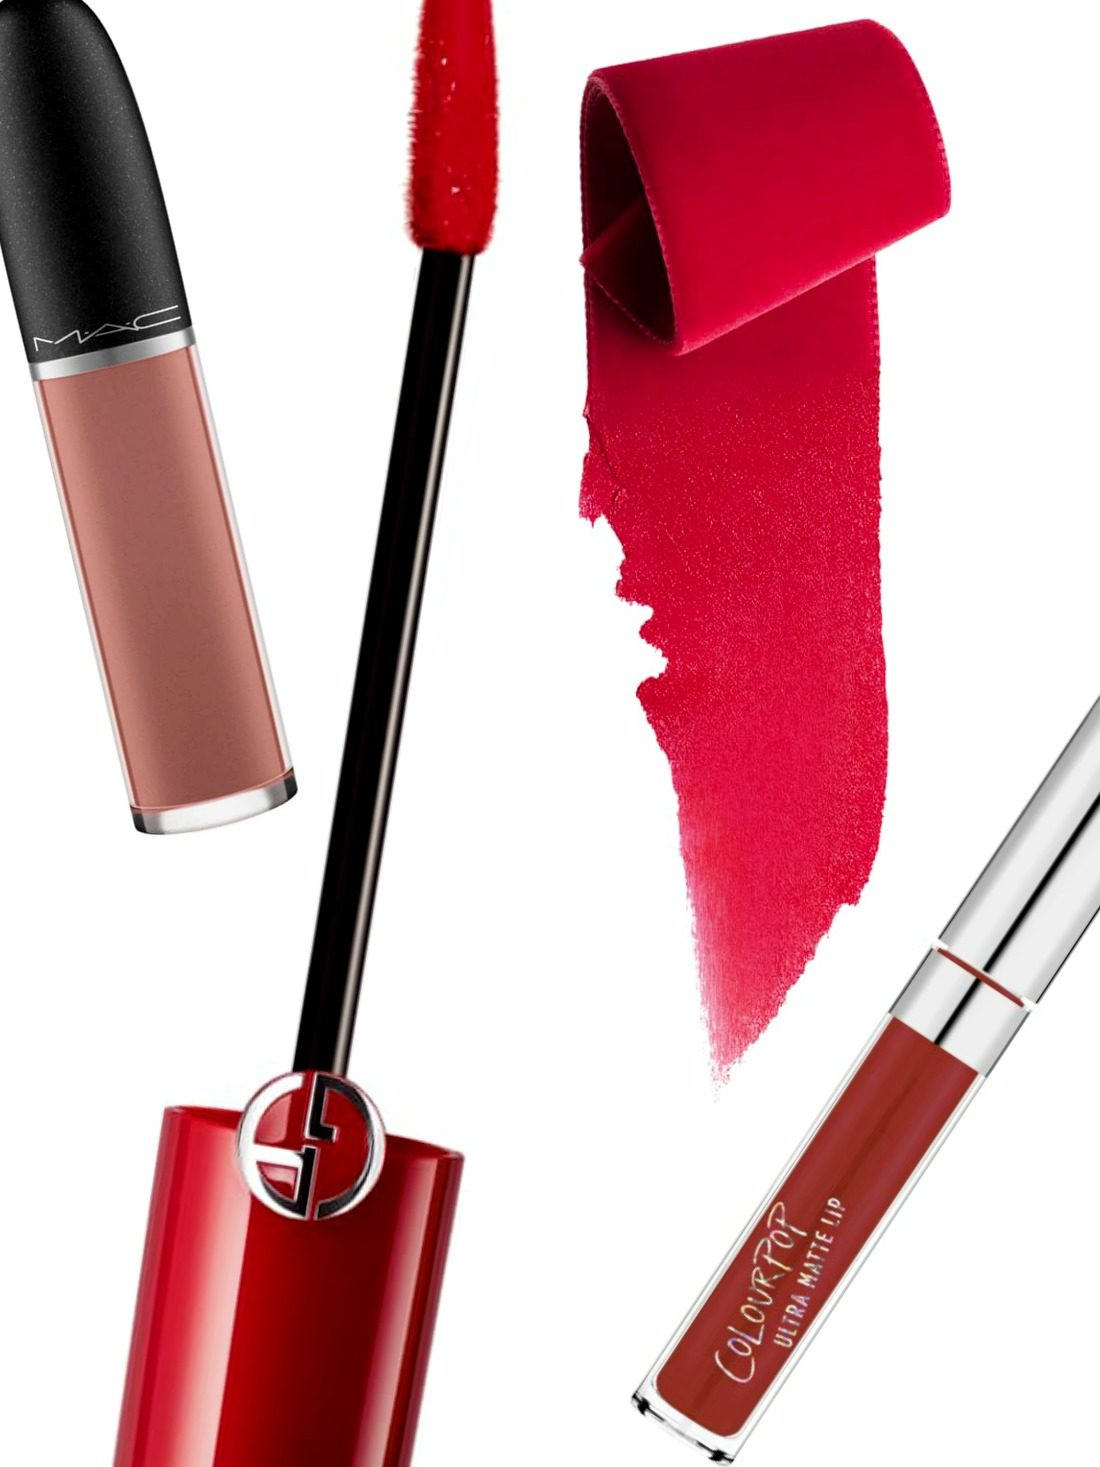 We've made our way through countless lip products to 12 best matte liquid lipstick that is not only ideal for day to day wear but worth every penny. Find out what they are!